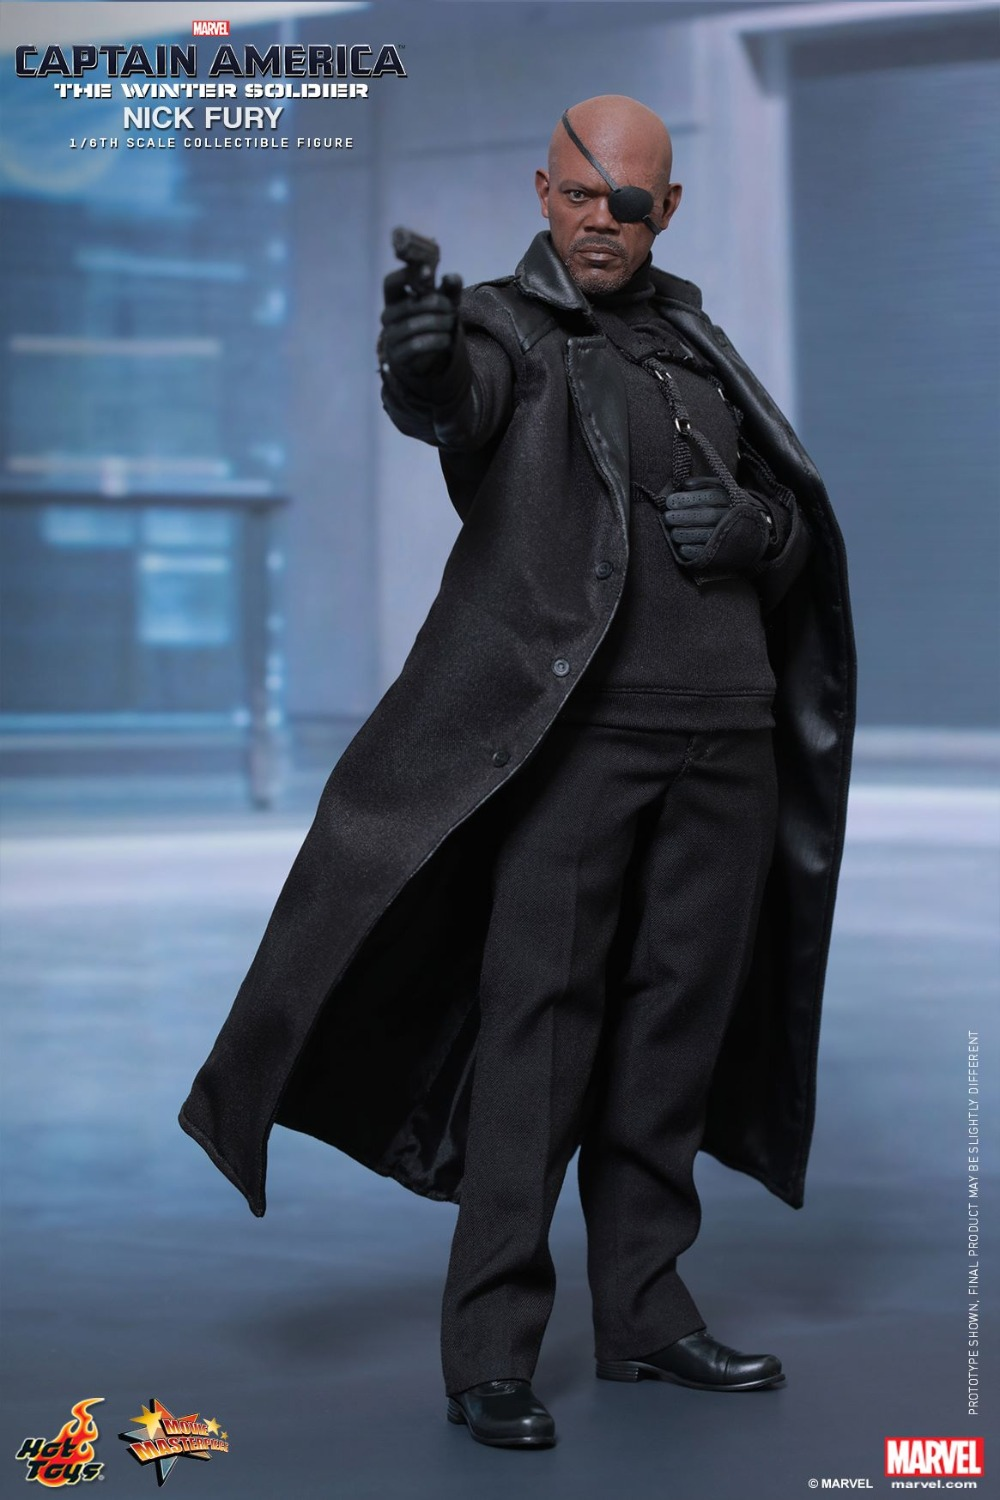 1/6 scale figure doll Captain America Nick Fury Agents of S.H.I.E.L.D Collectible 12 action figure doll Plastic model toys 1 6 scale figure captain america civil war or avengers ii scarlet witch 12 action figure doll collectible model plastic toy